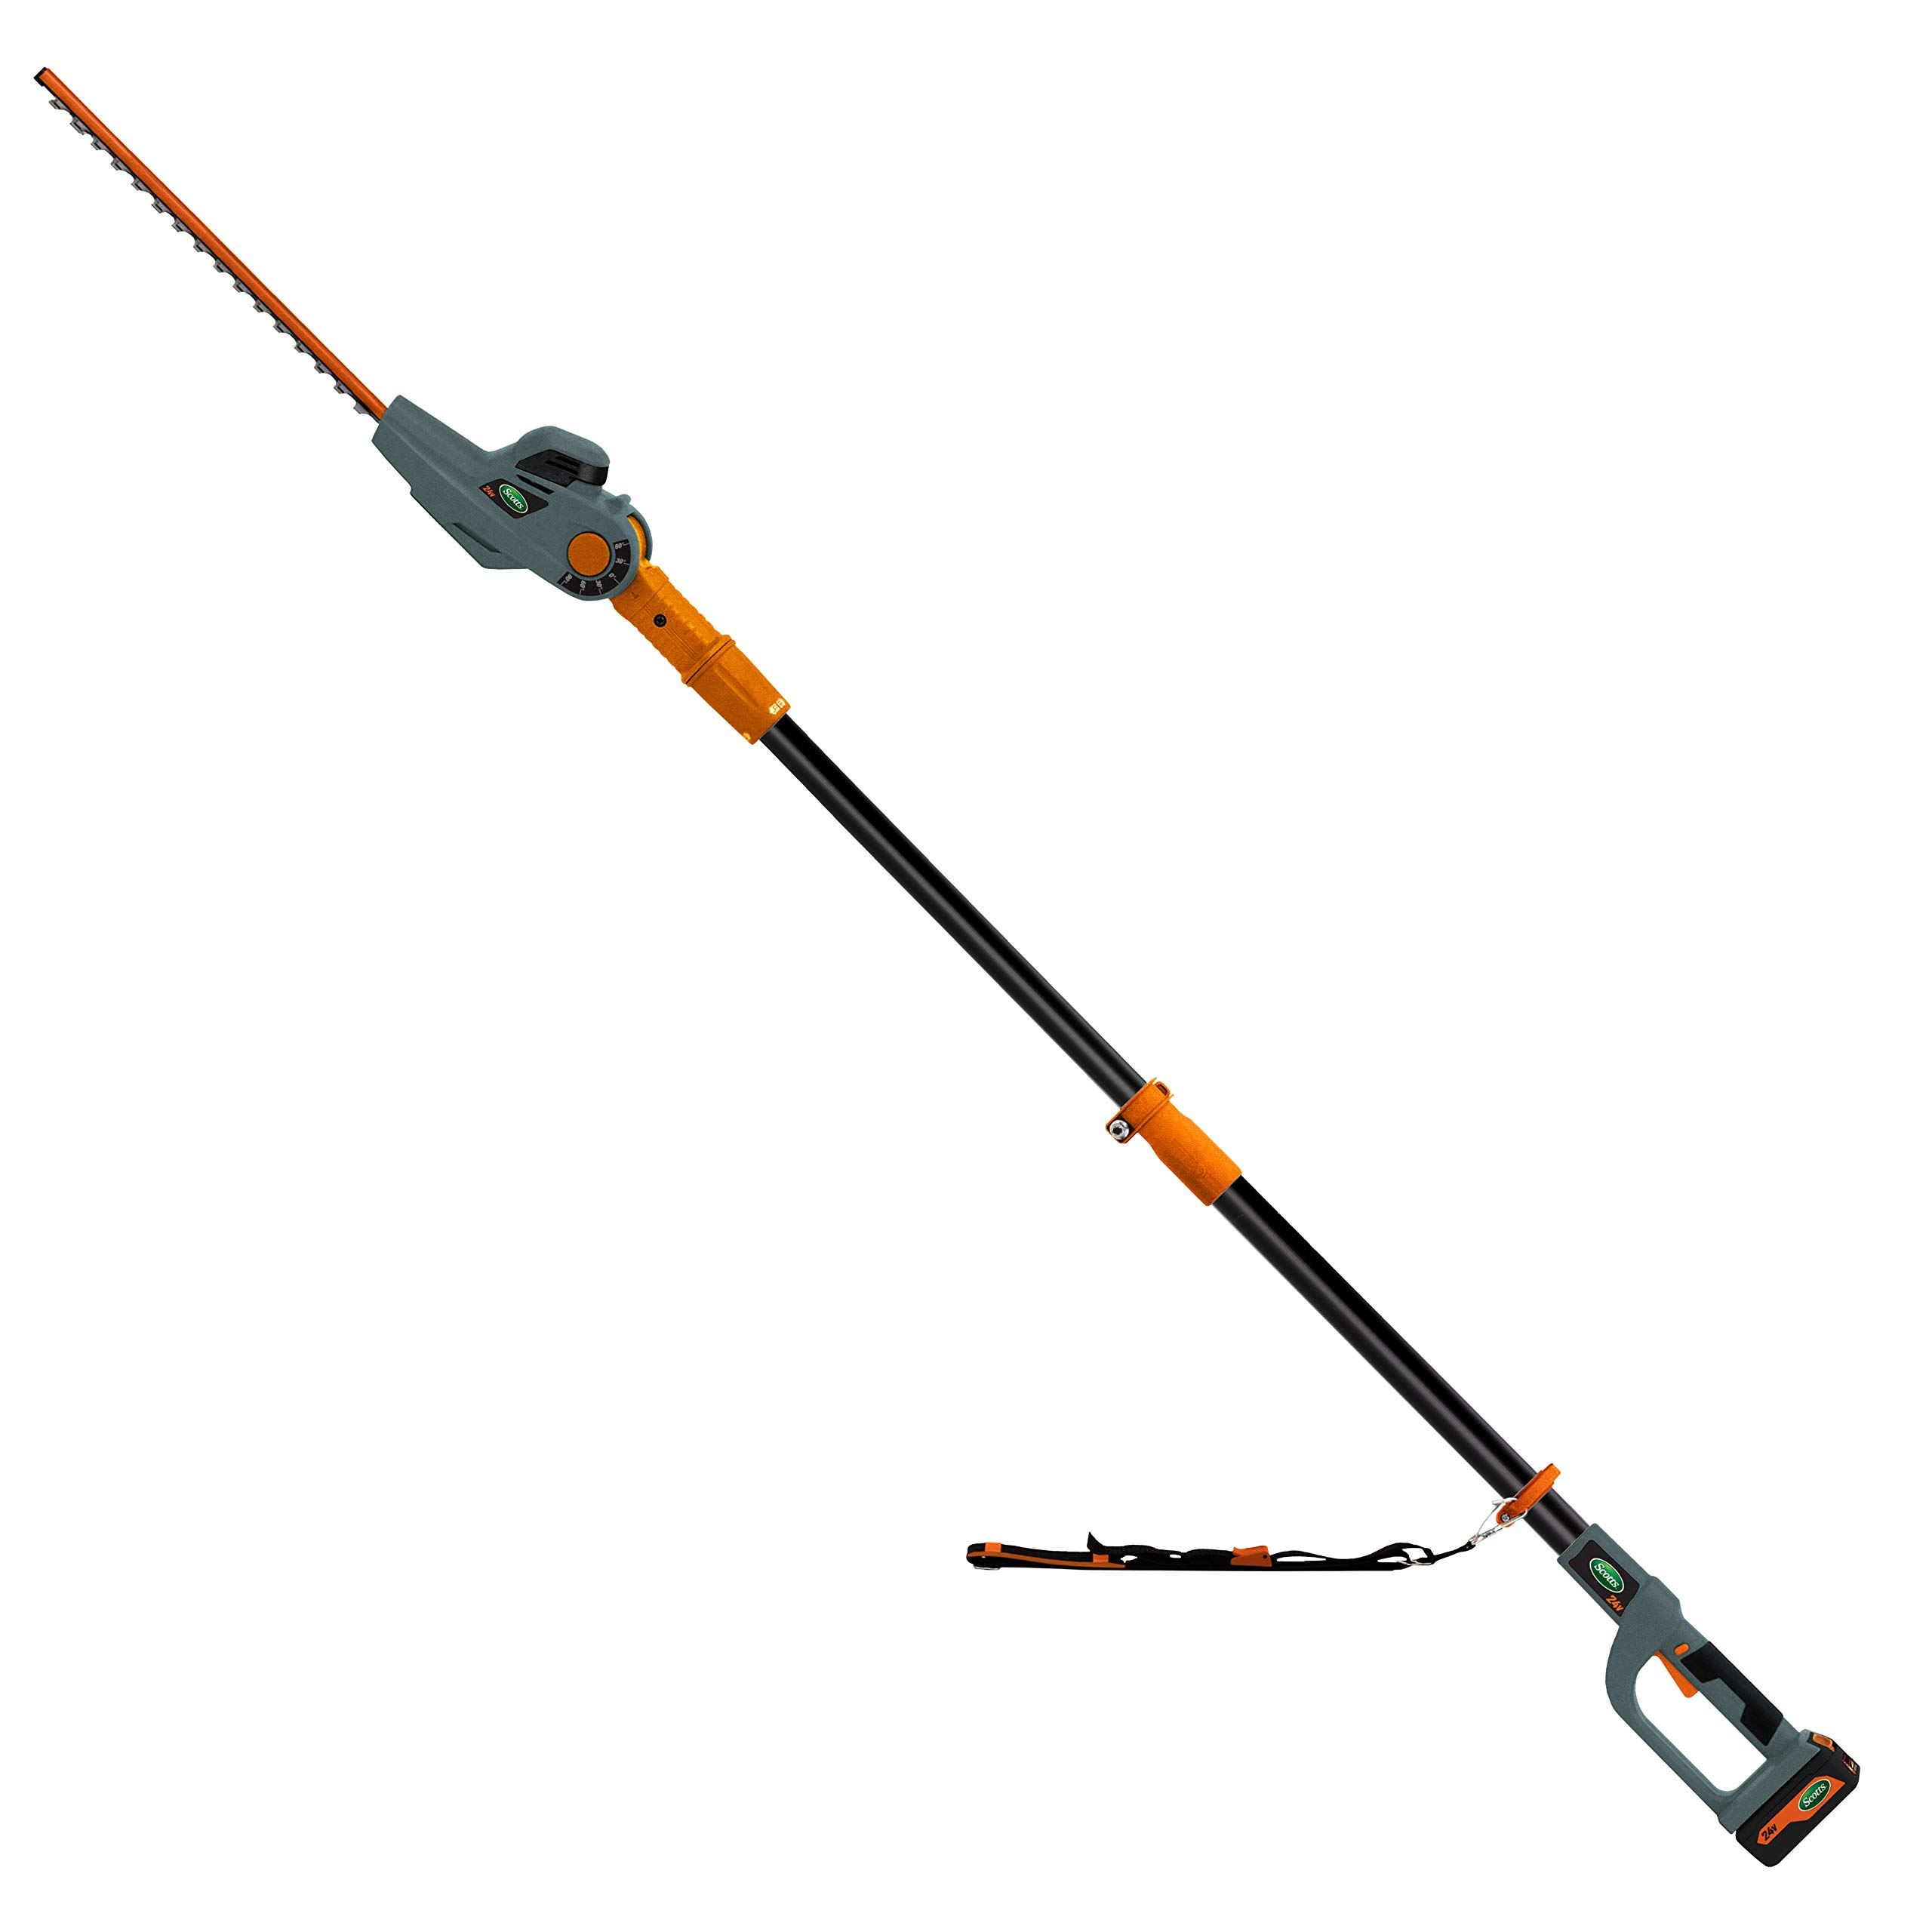 Scotts Outdoor Power Tools LPHT11724S 24-Volt 17-Inch Cordless Pole Hedge Trimmer, 2.5AH Battery and Fast Charger Included by Scotts Outdoor Power Tools